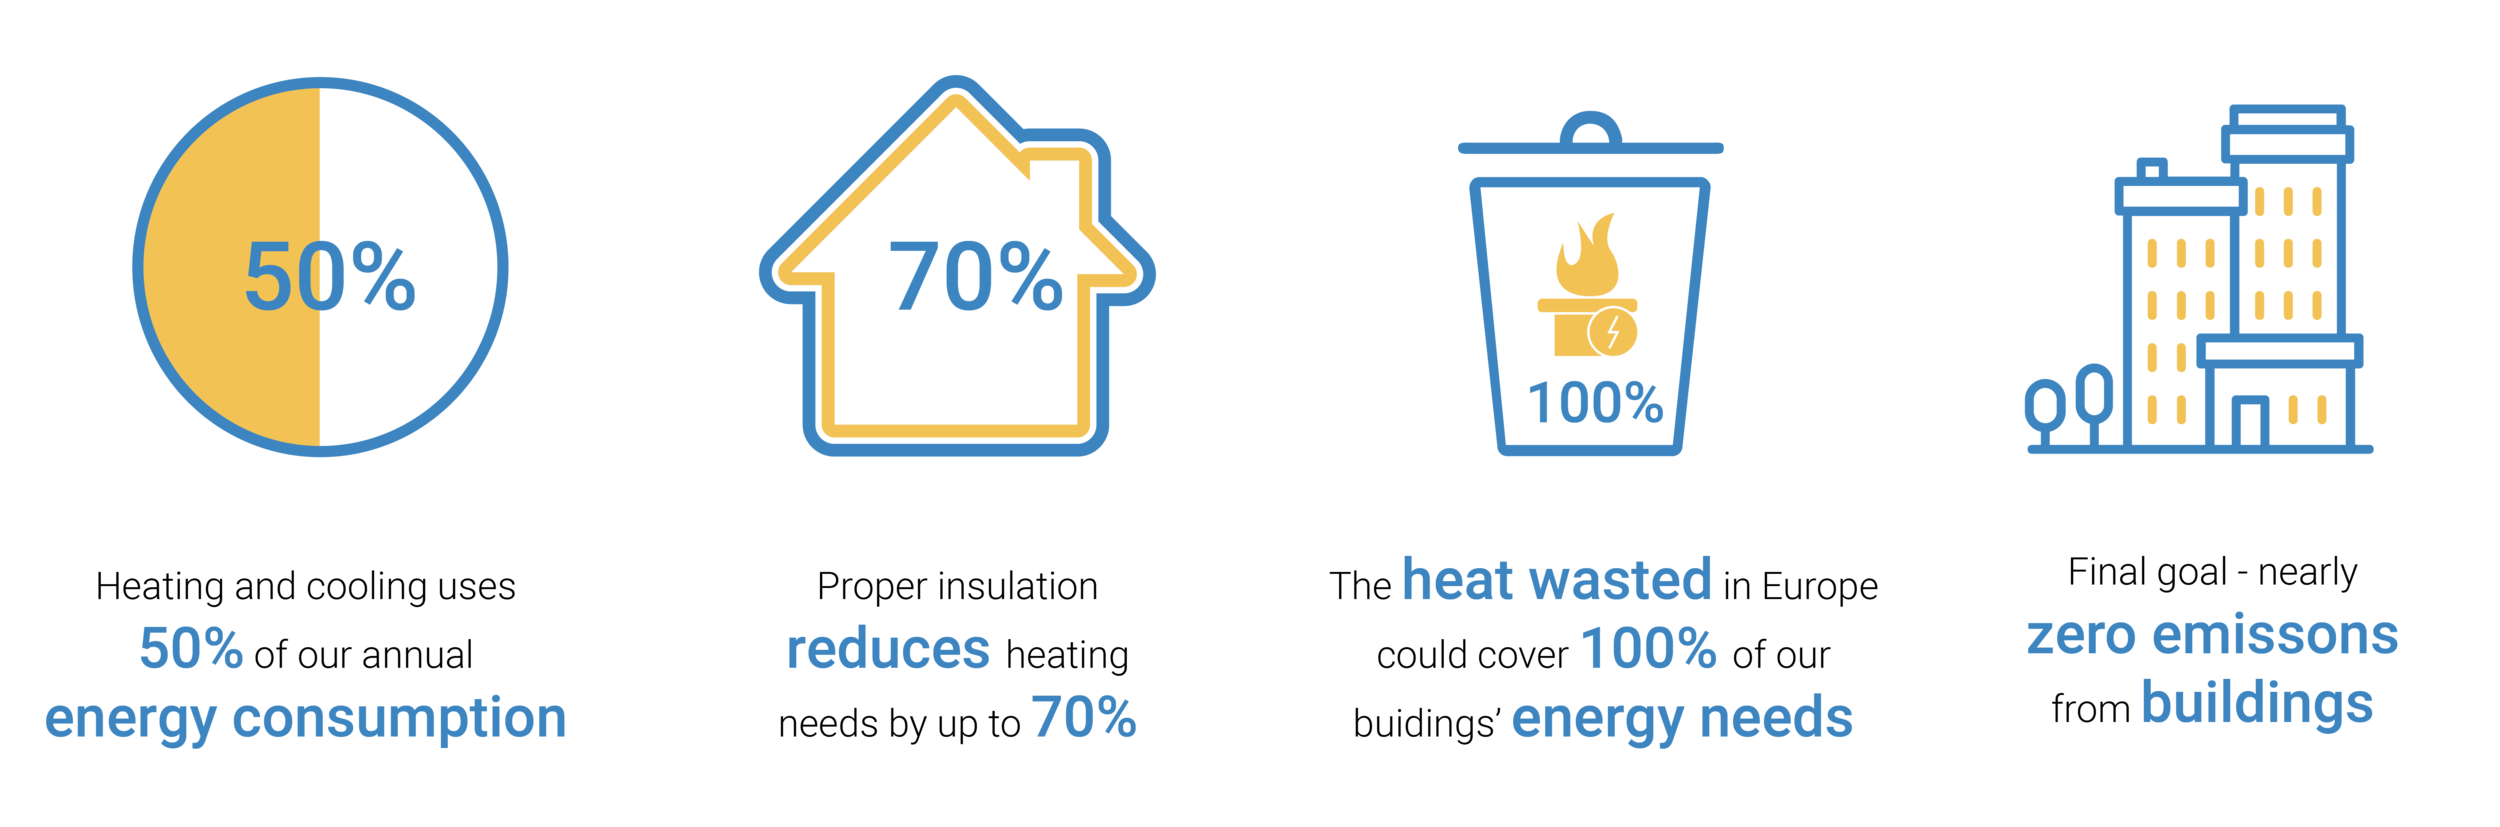 Statistical information about heating and cooling / source:  EU Commission's Directorate for Energy